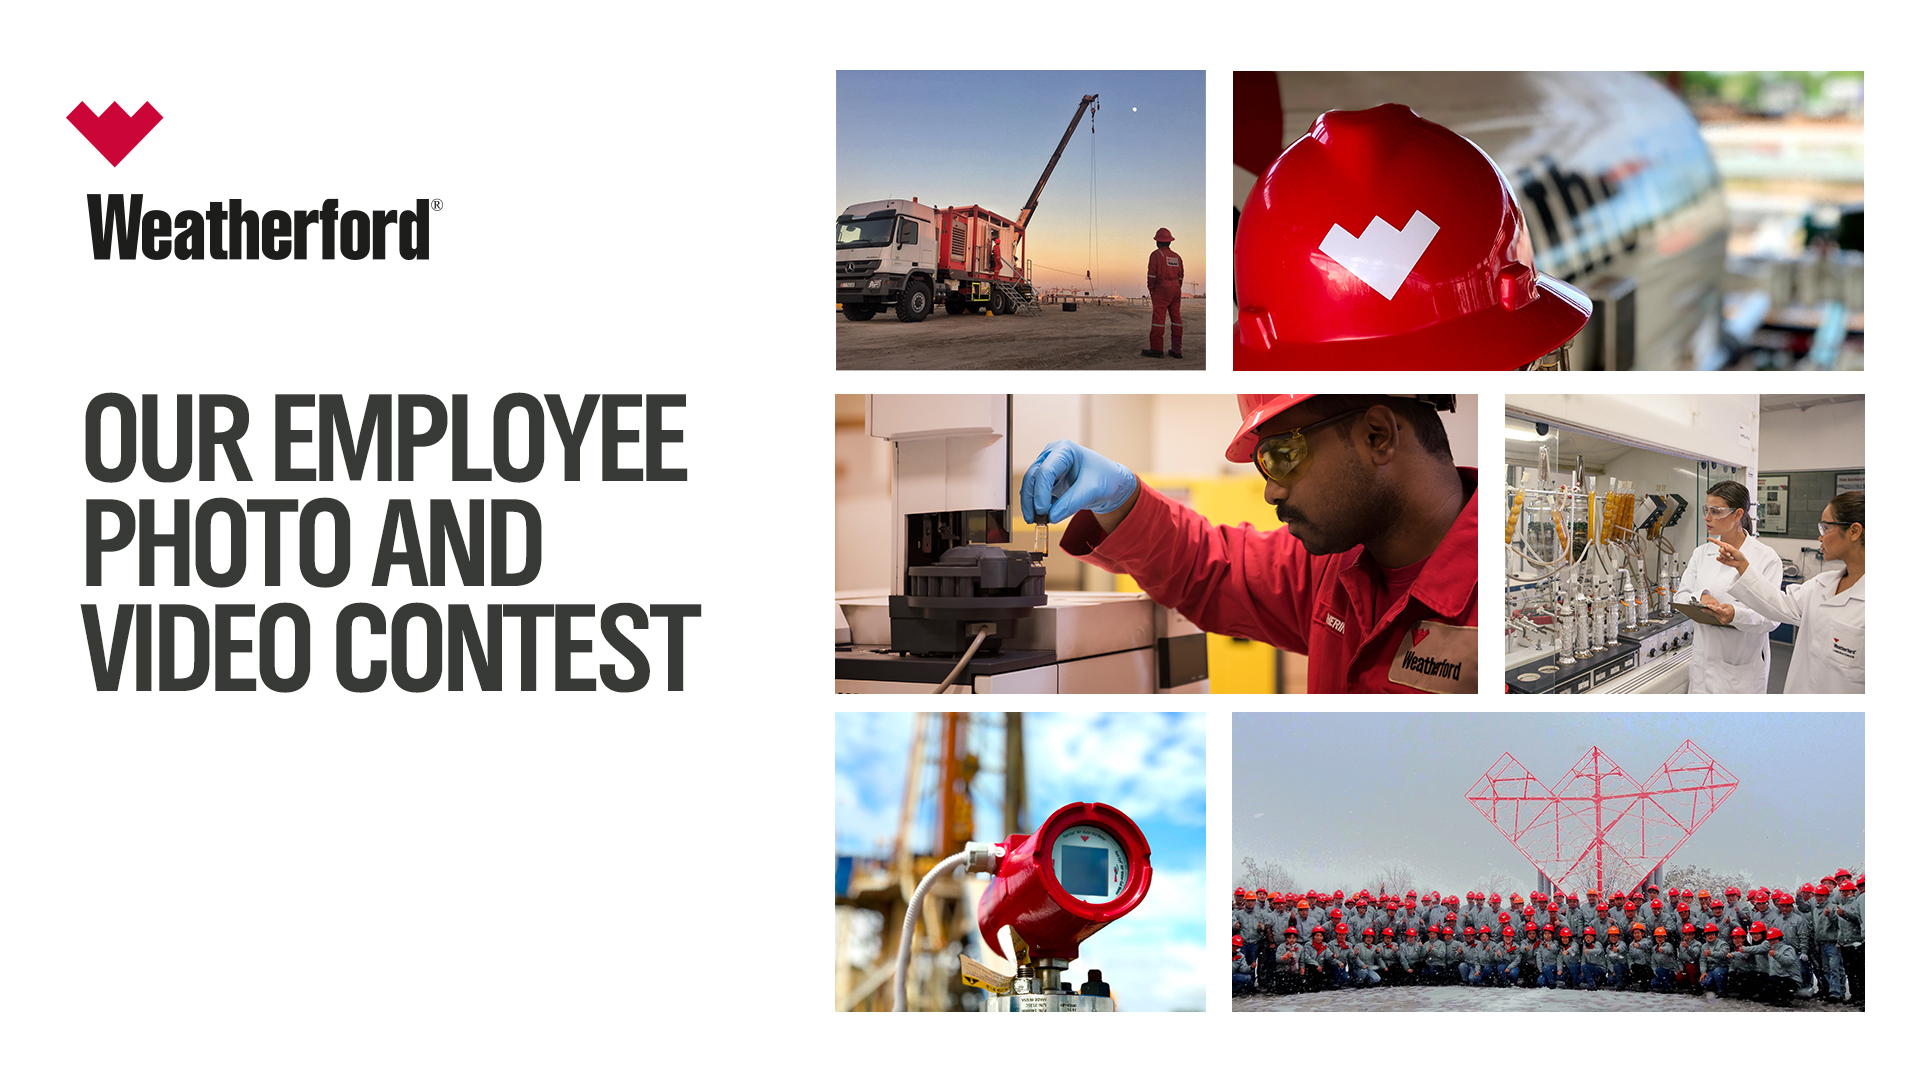 Weatherford Employee Photo Video Contest